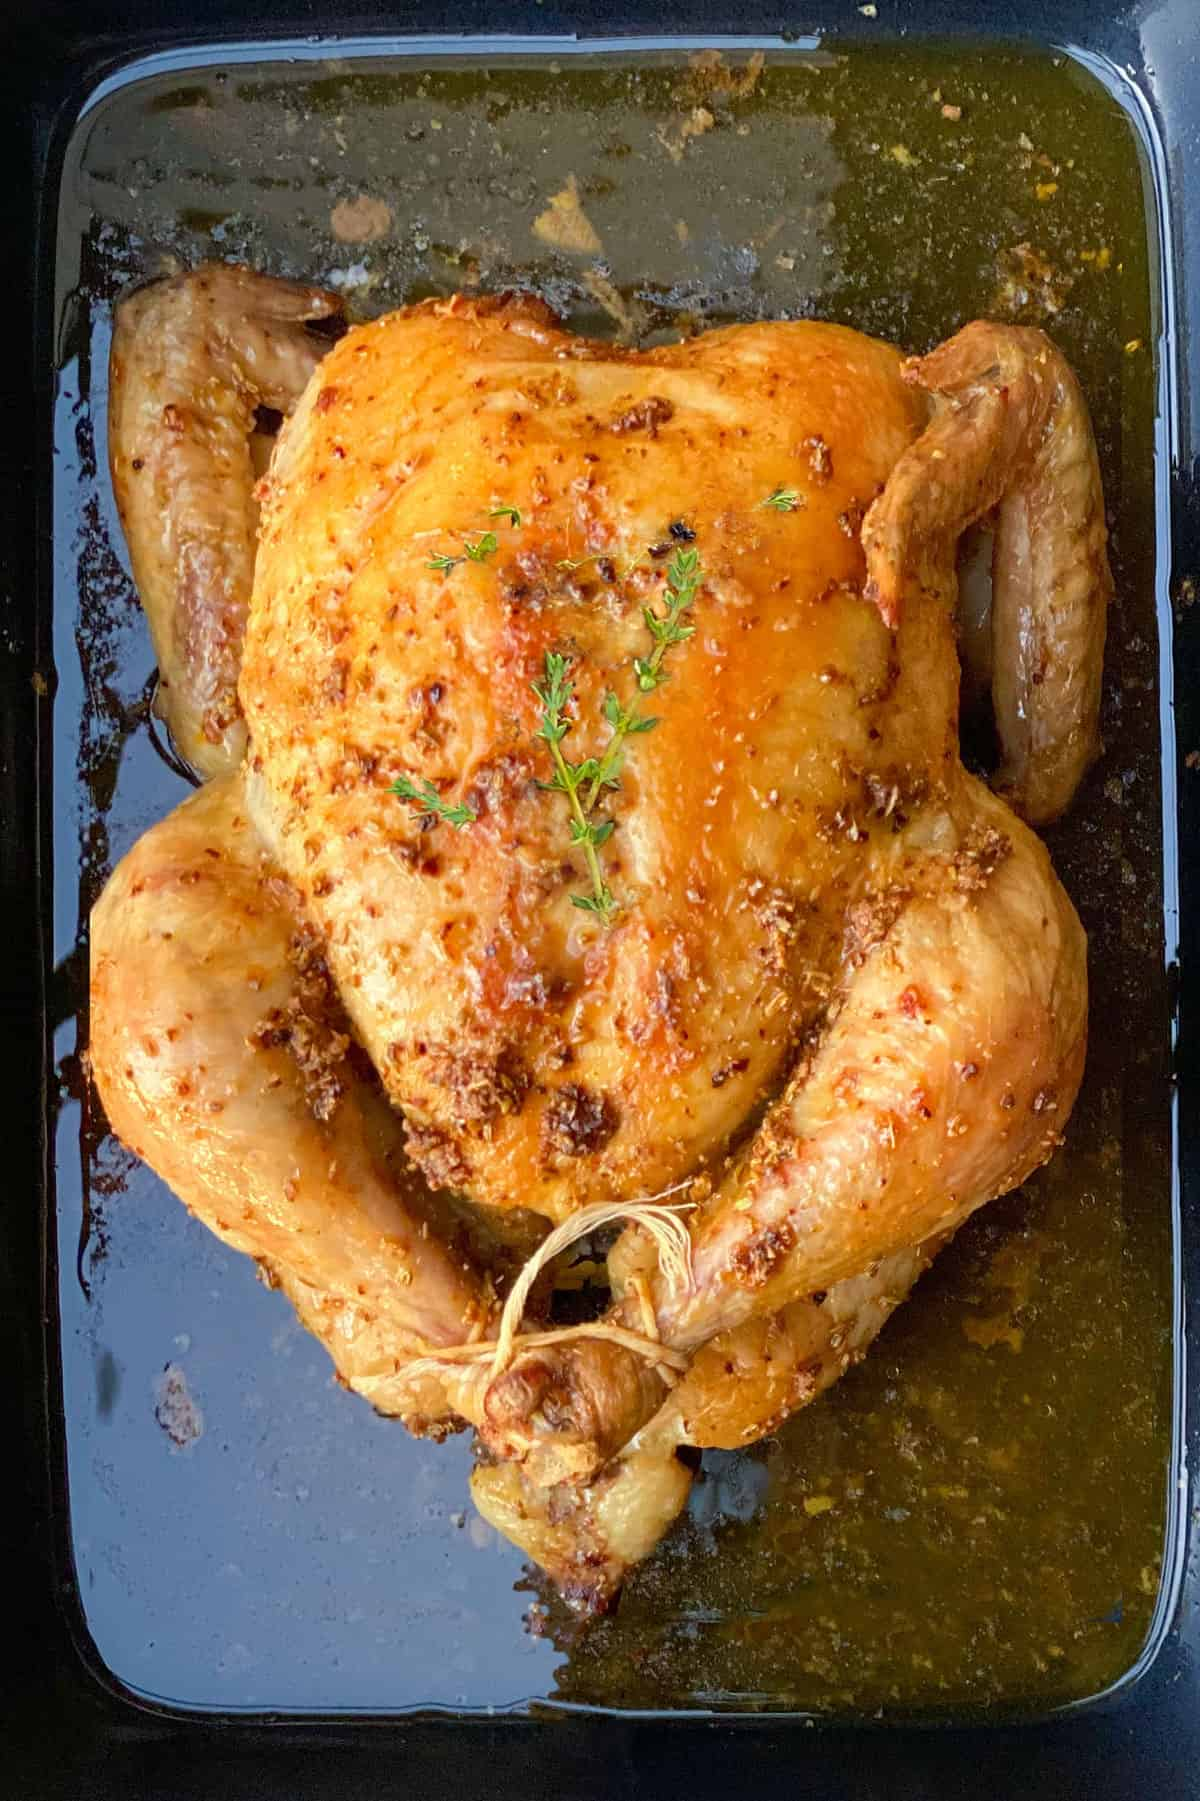 a whole roasted chicken in a black roasting pan with sprigs of thyme on top